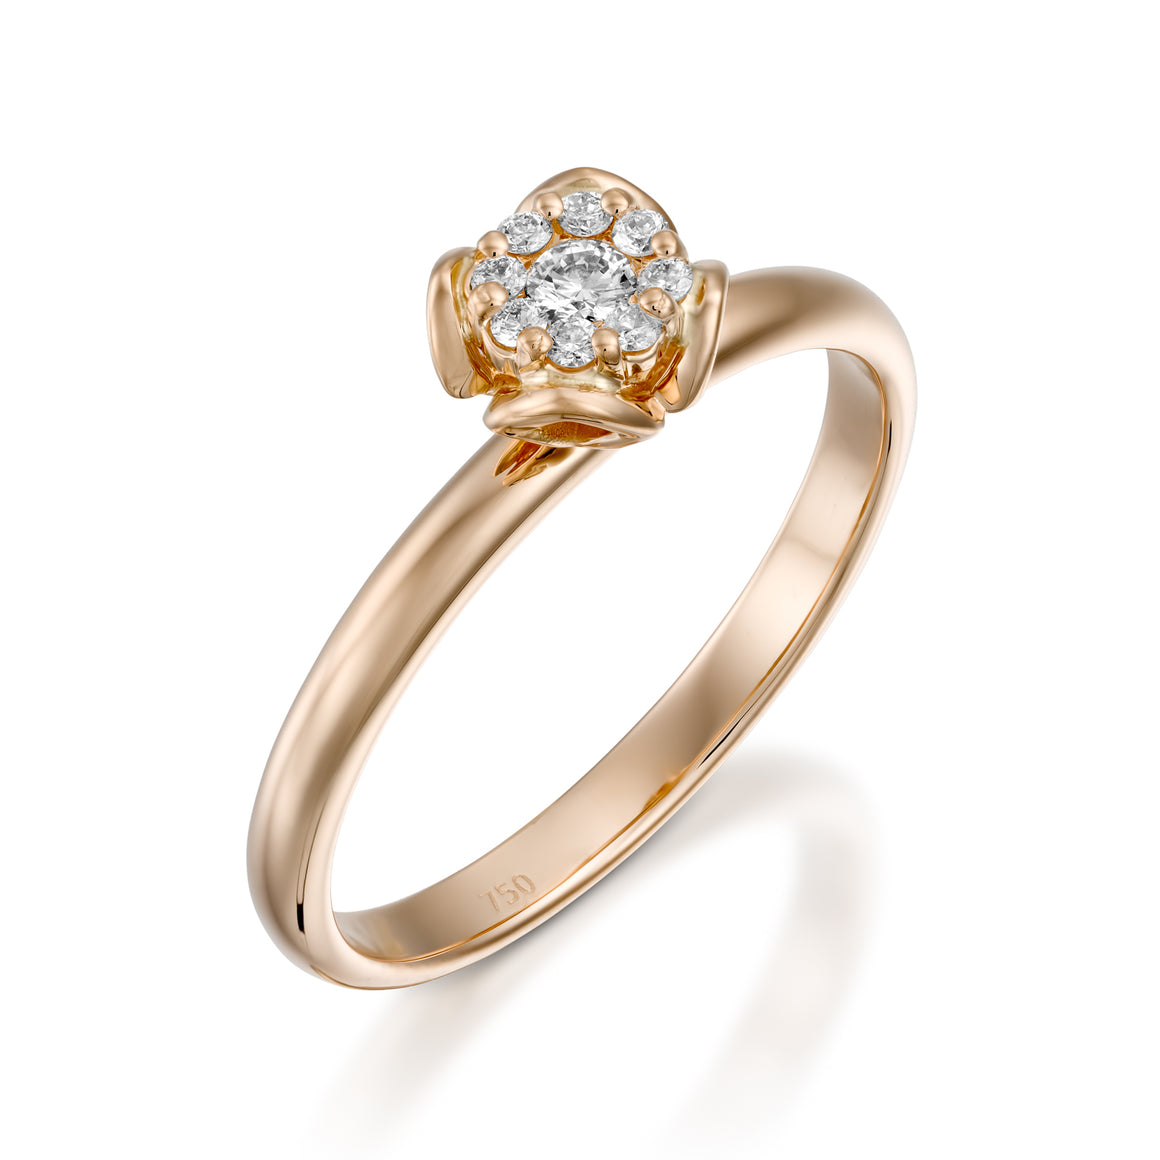 0.12 carat Rose gold flower diamond engagement ring for women - Petite Fleur